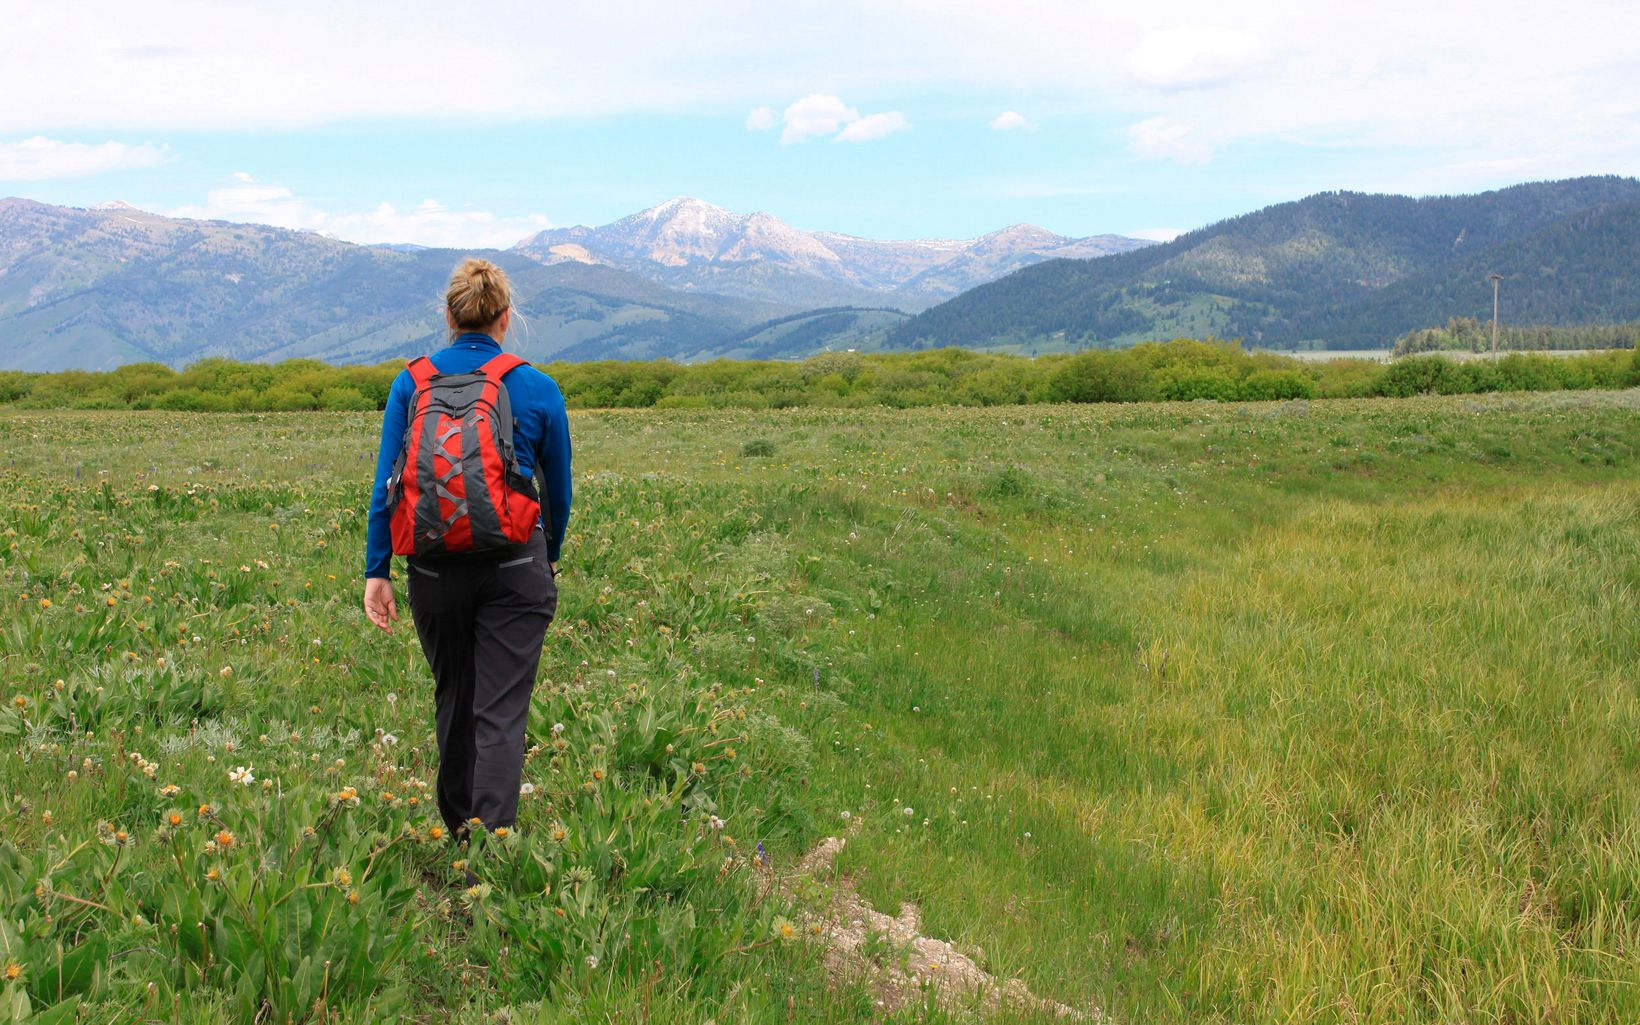 A woman with a backpack walking away from the camera through a meadow.